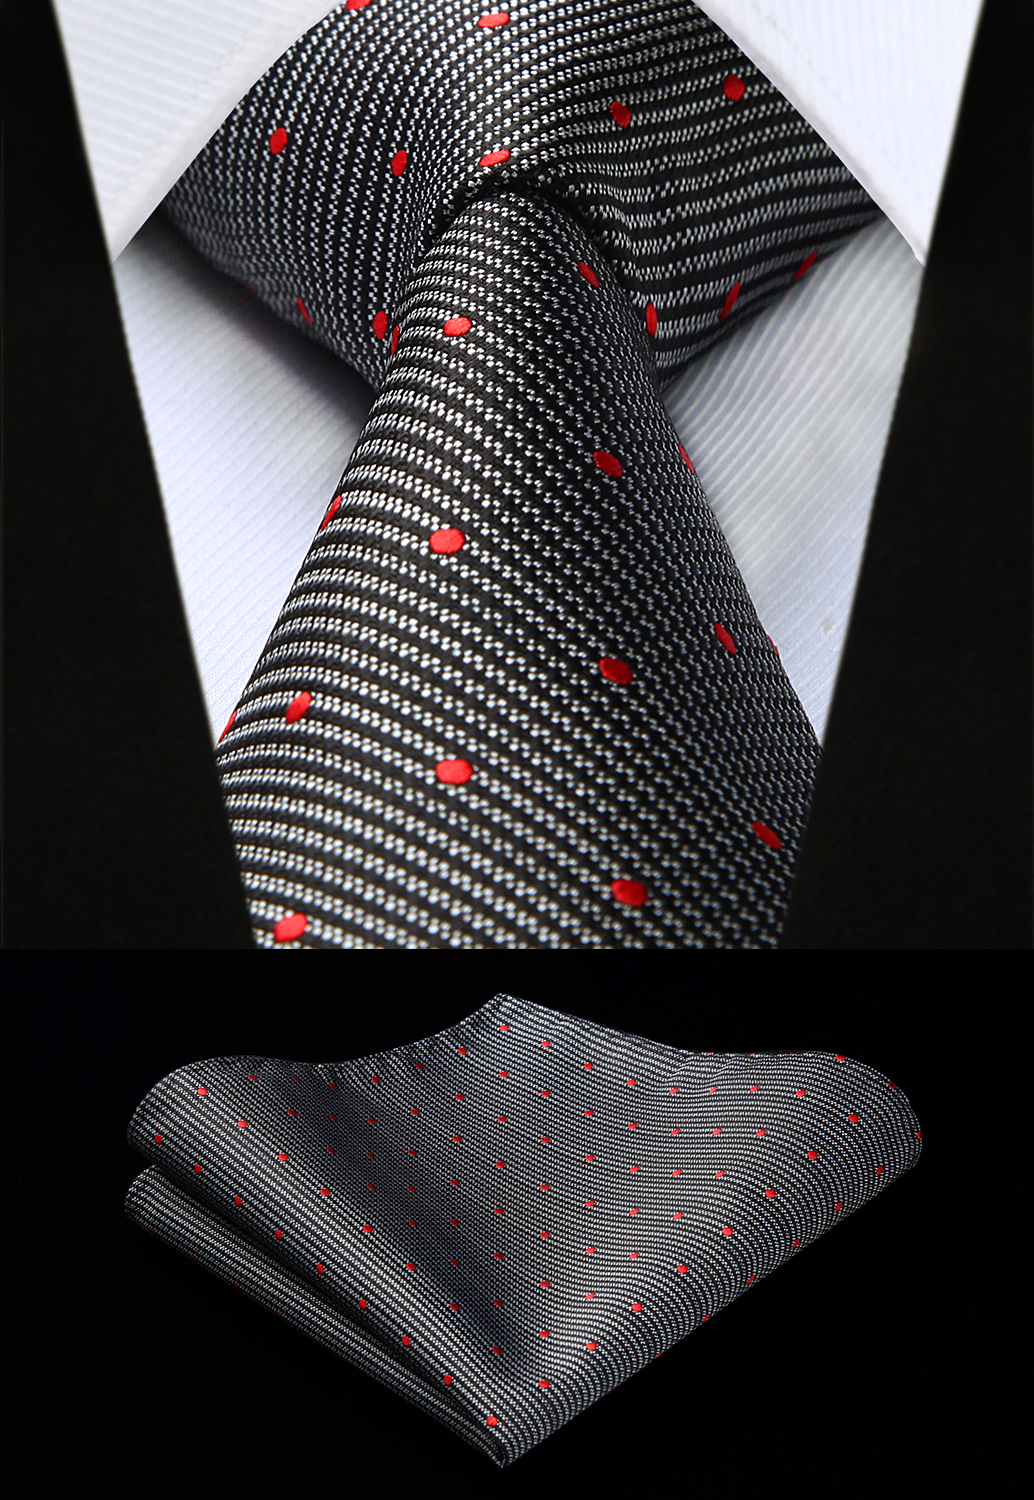 Party Wedding Classic Pocket Square Tie Woven Men Tie Fashion Black Red Polka Dot Necktie Handkerchief Set#TD610A8S